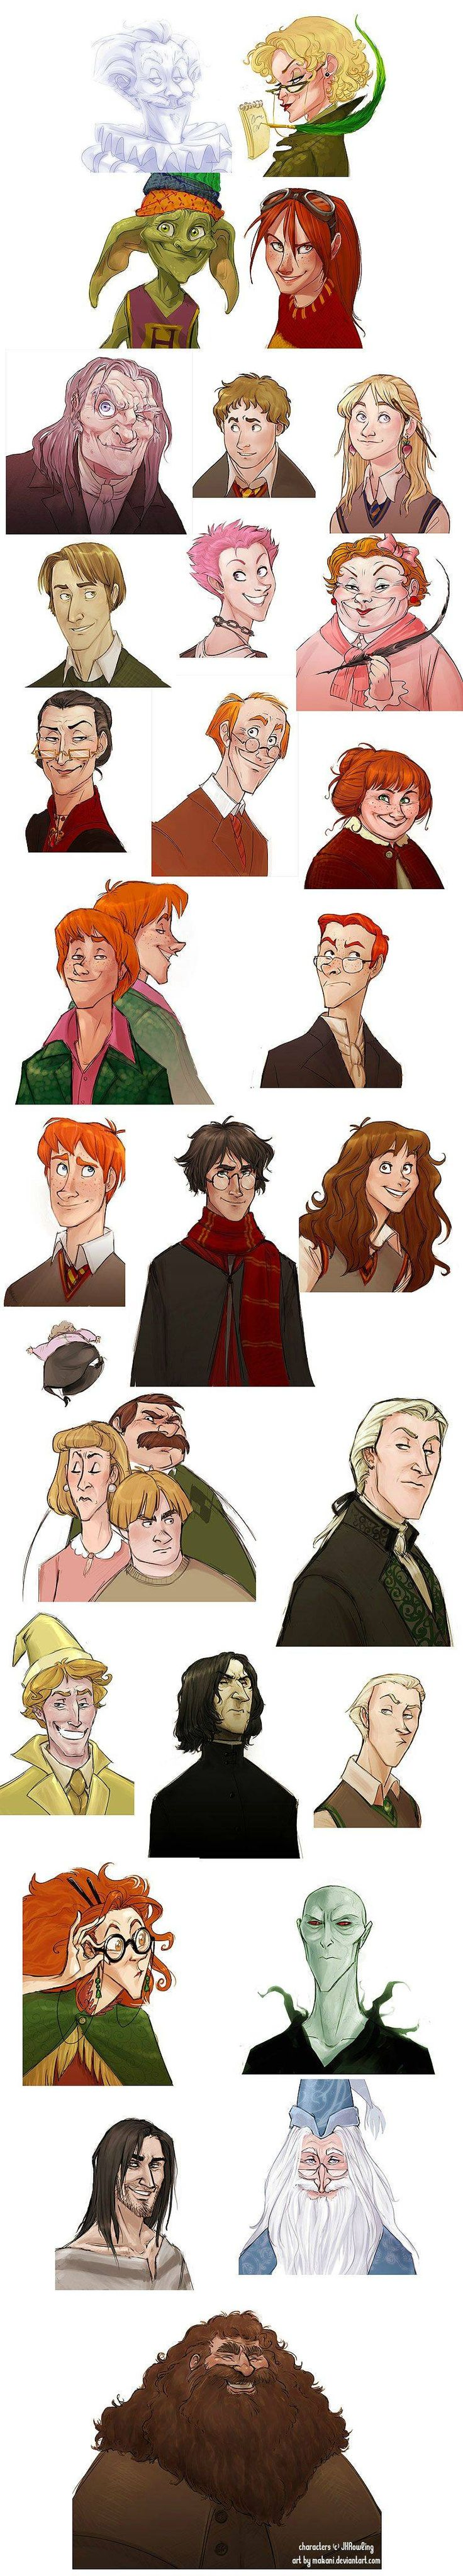 Luxe Dessins à Colorier De Harry Potter